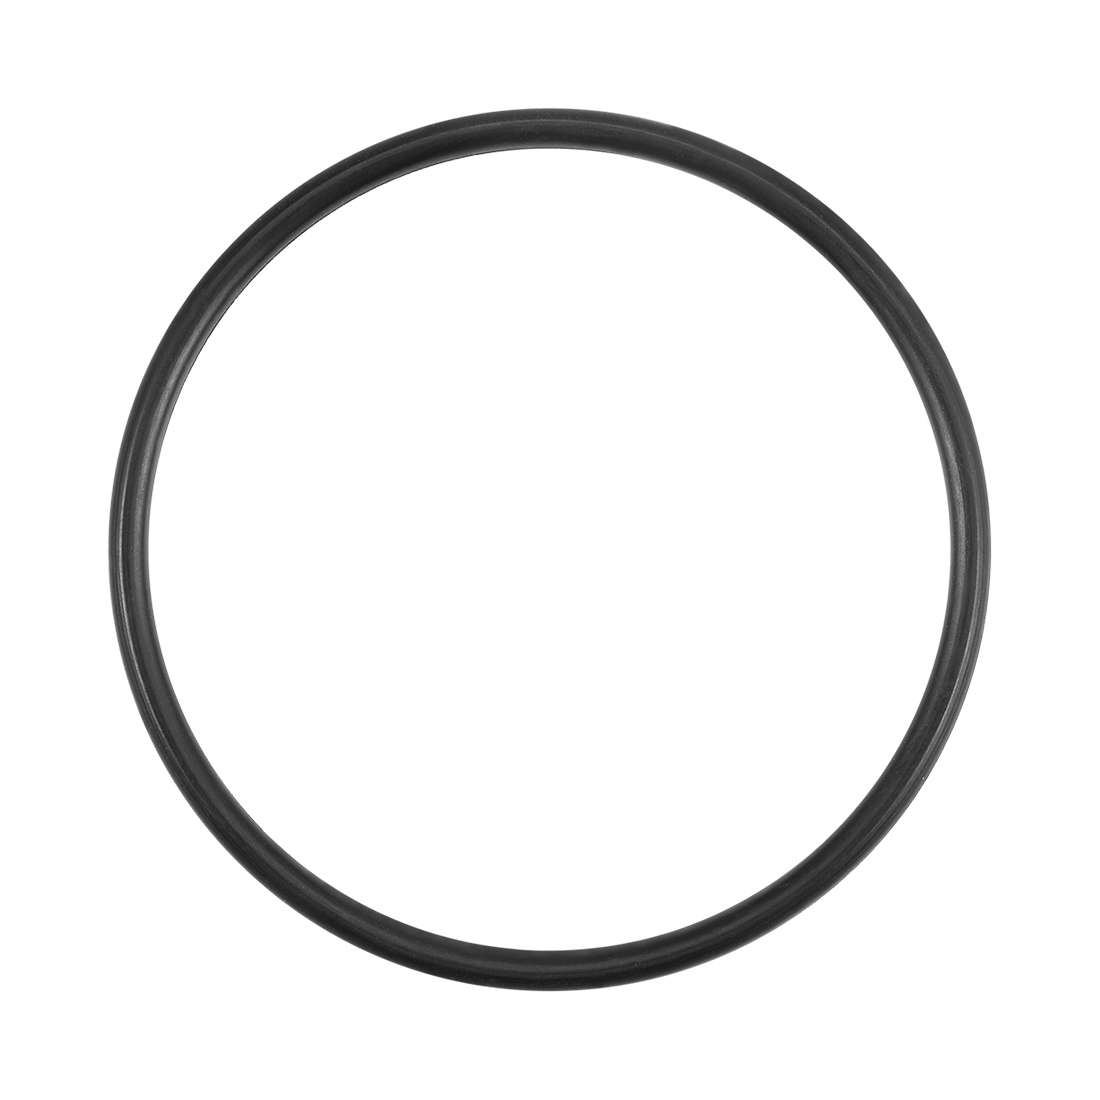 O-Rings Nitrile Rubber 35mm x 38.6mm x 1.8mm Round Seal Gasket